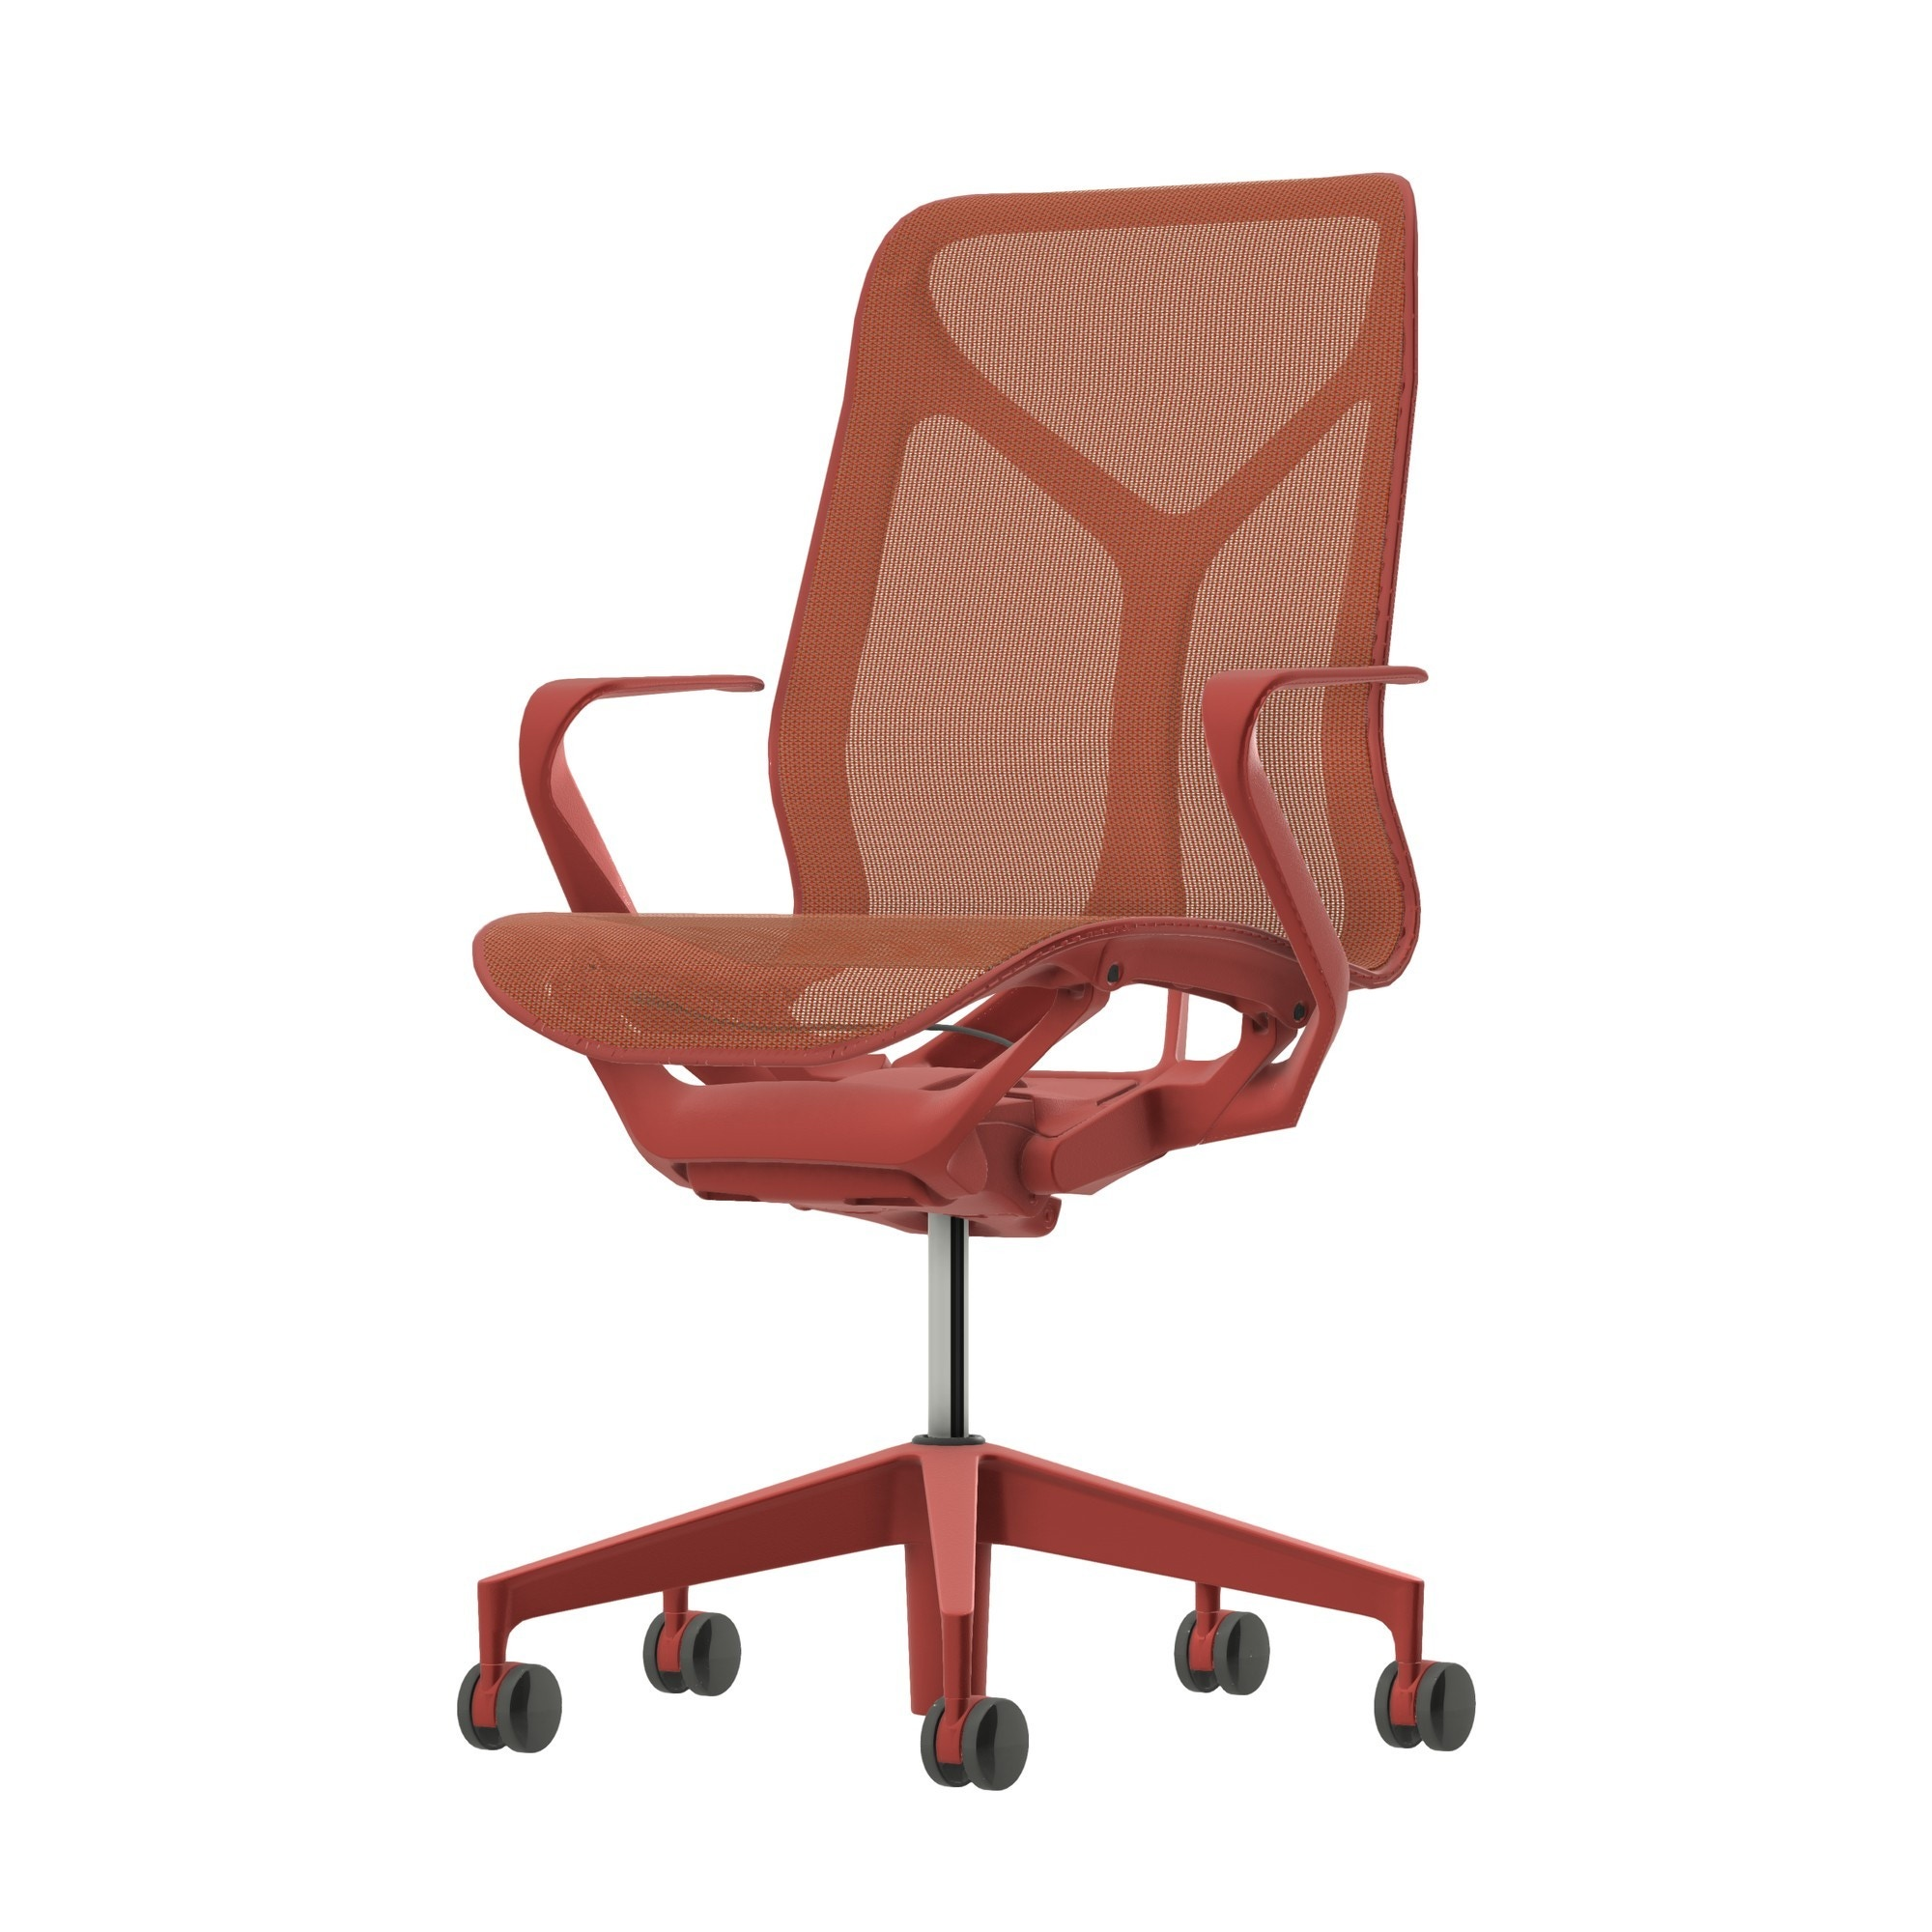 Herman Miller Cosm Chair, Dipped in Colour